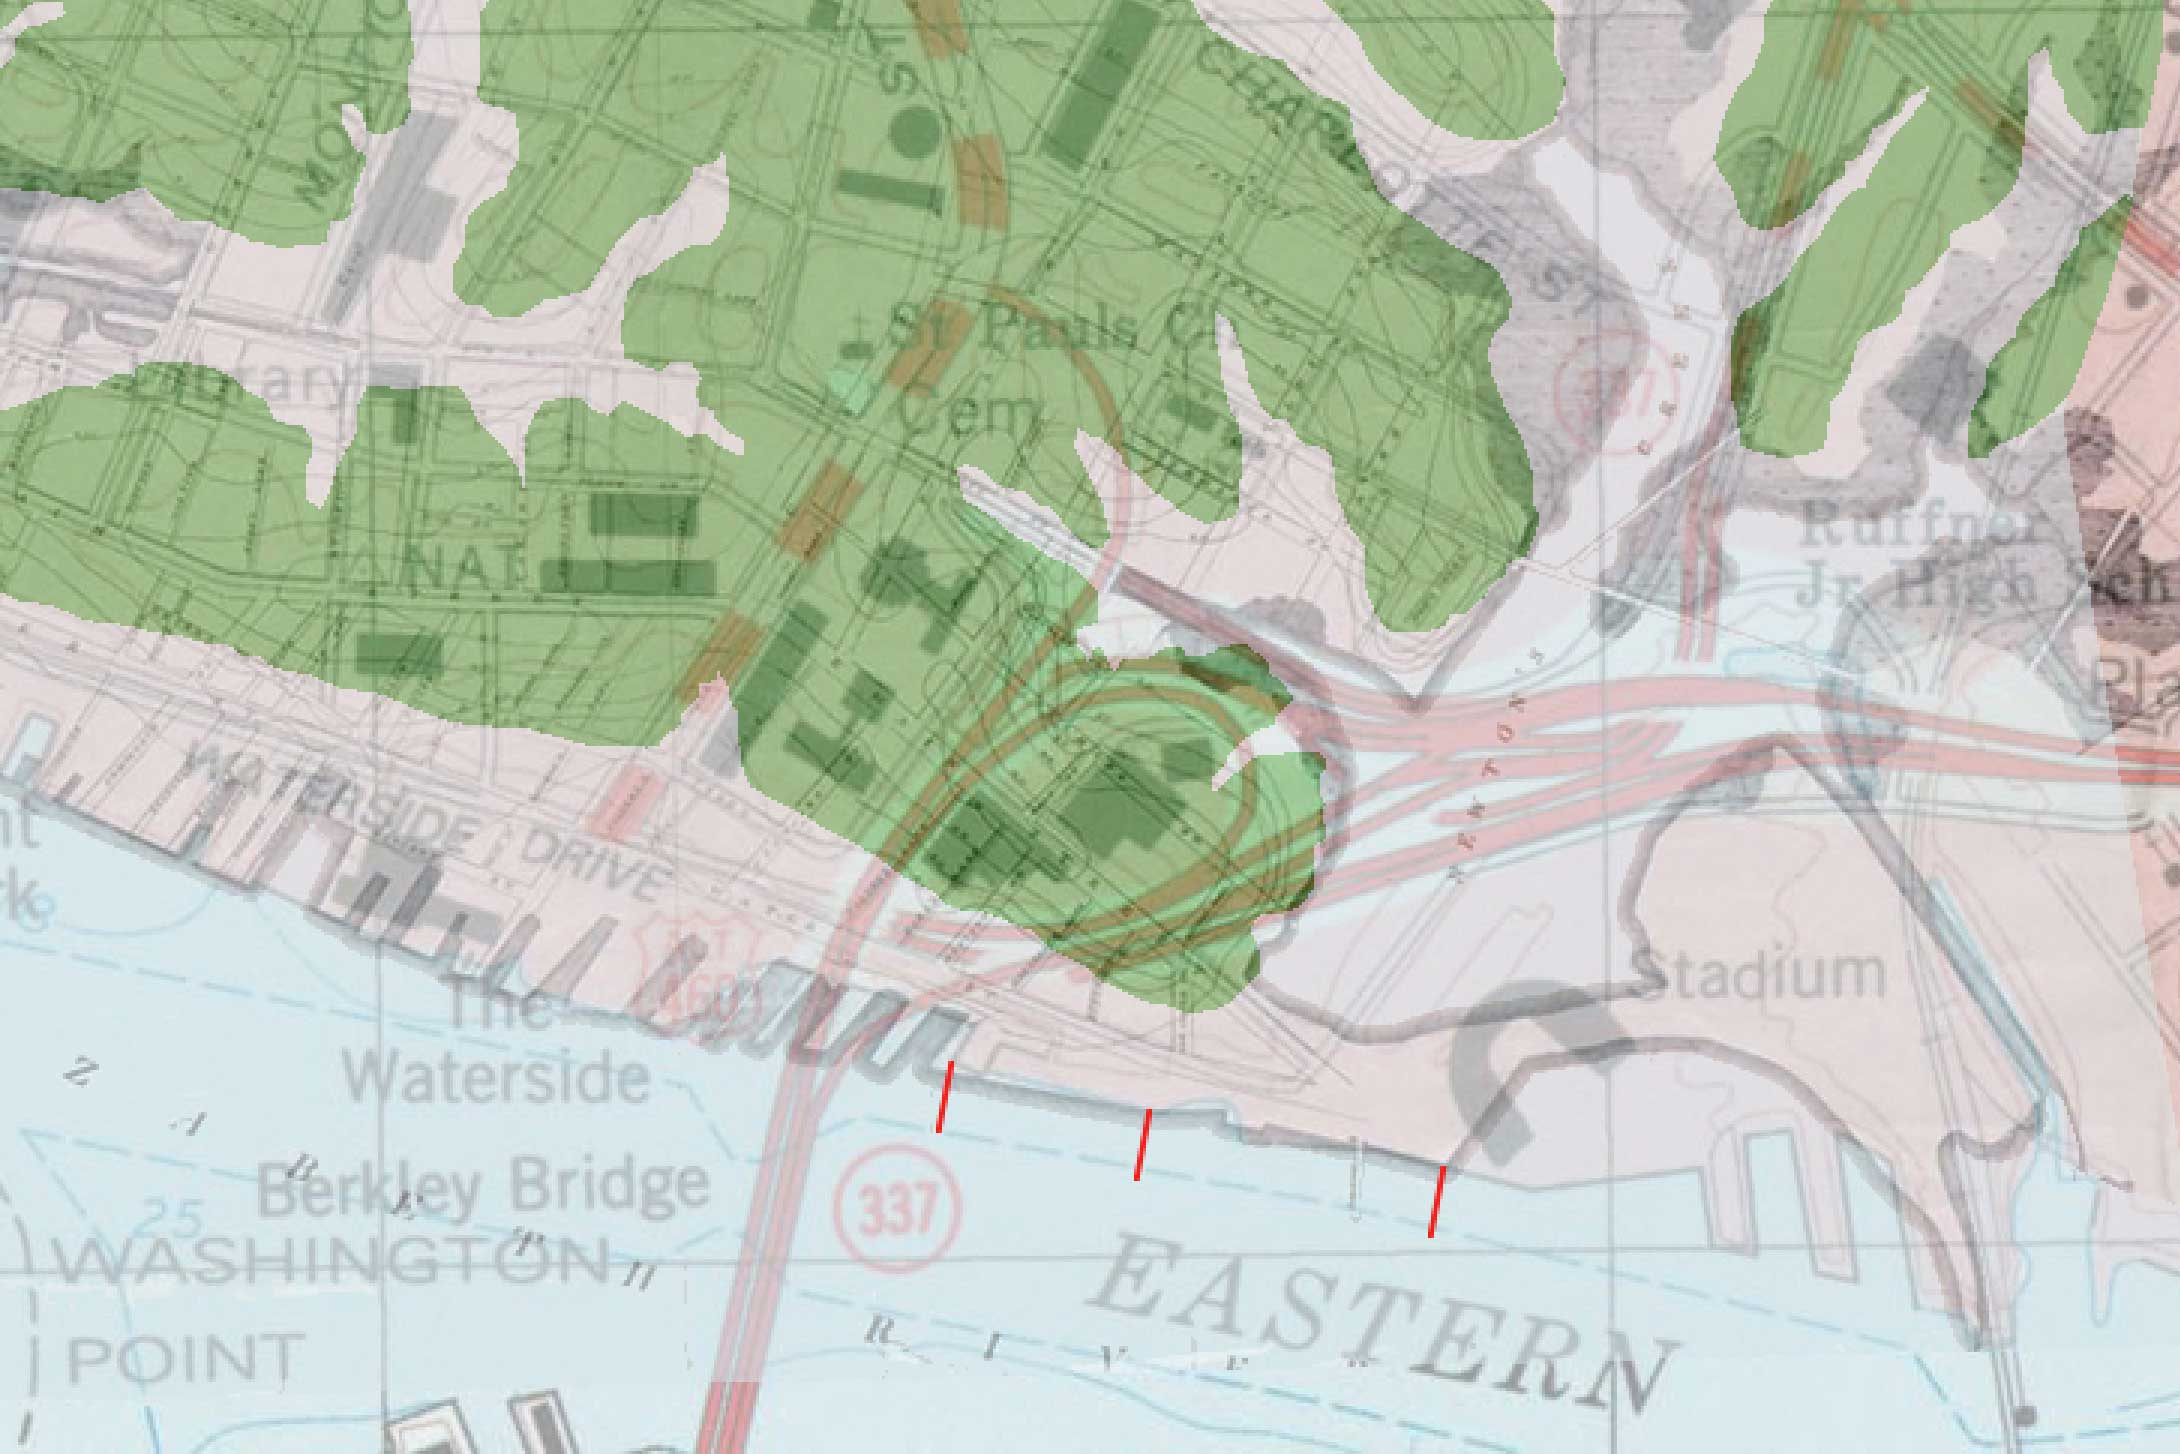 The above map shows areas around Harbor Park that were originally land – in green – and areas that used to be water but were filled in during industrial development – in gray. The gray areas are extremely vulnerable to flooding and sea-level rise.